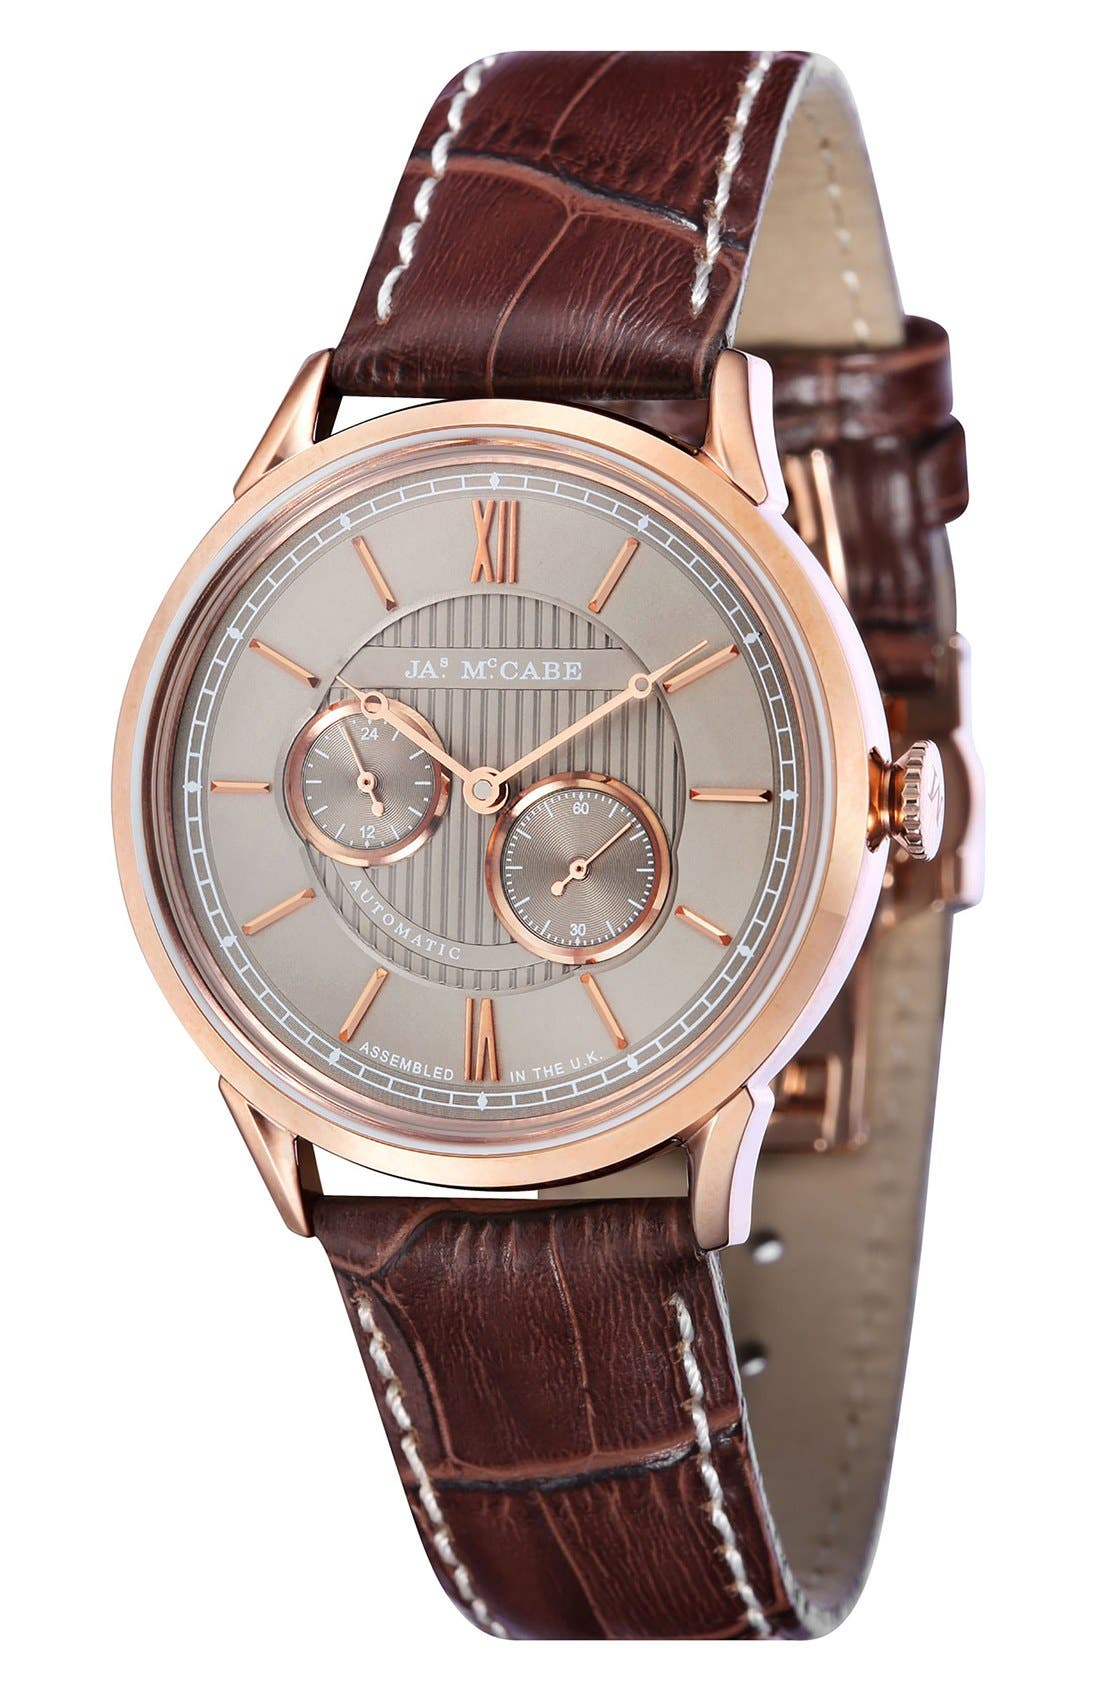 JAMES MCCABE Heritage II Automatic Multifunction Leather Strap